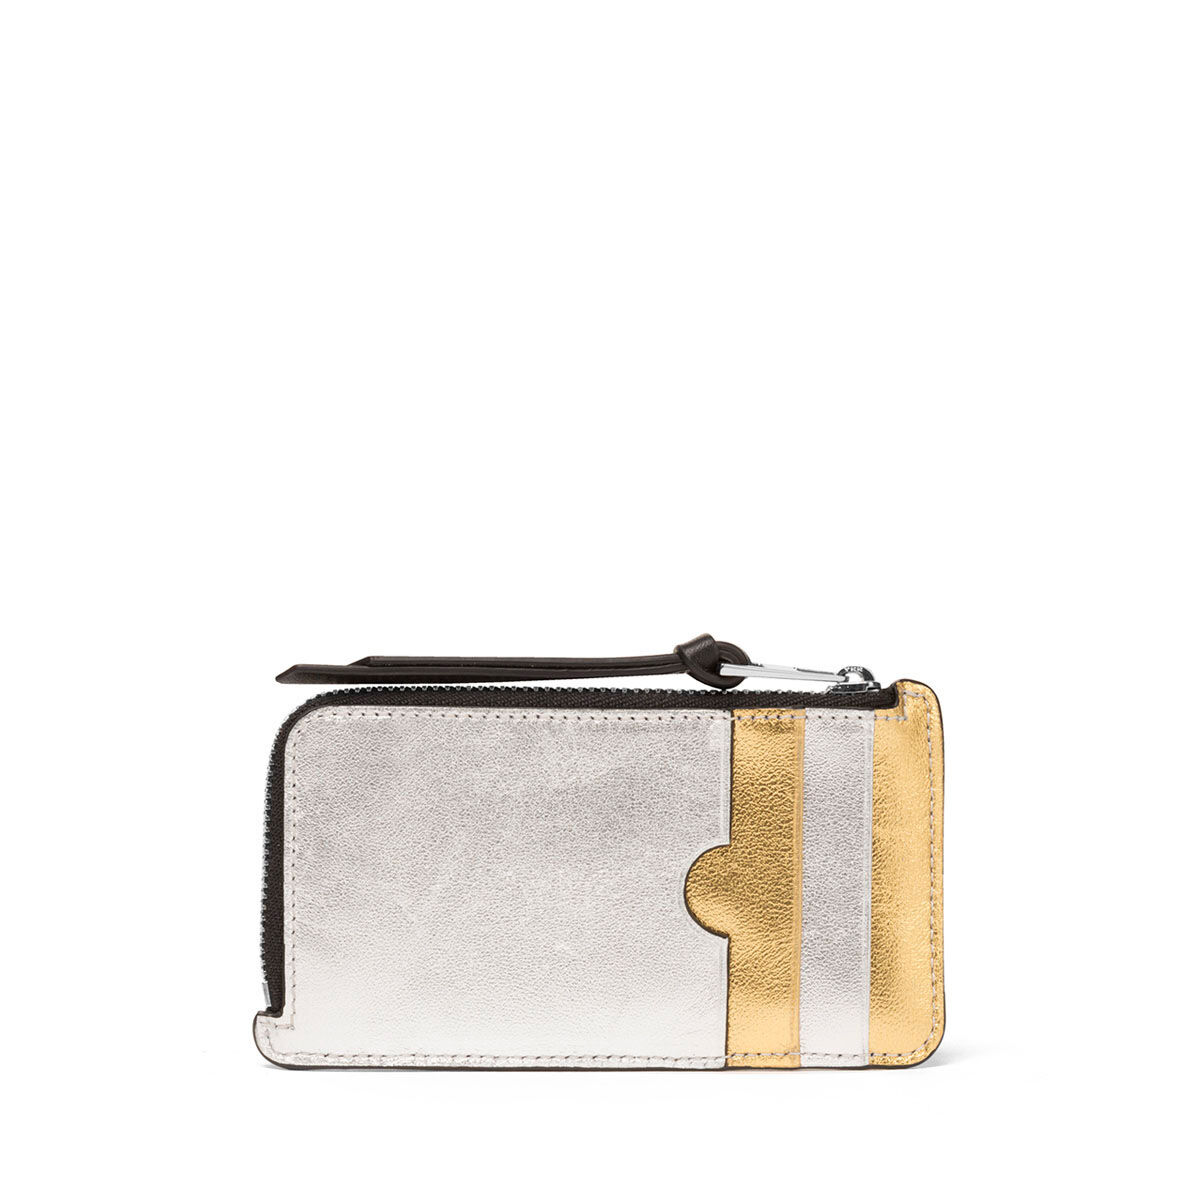 LOEWE Rainbow Coin/Card Holder Gold/Silver all